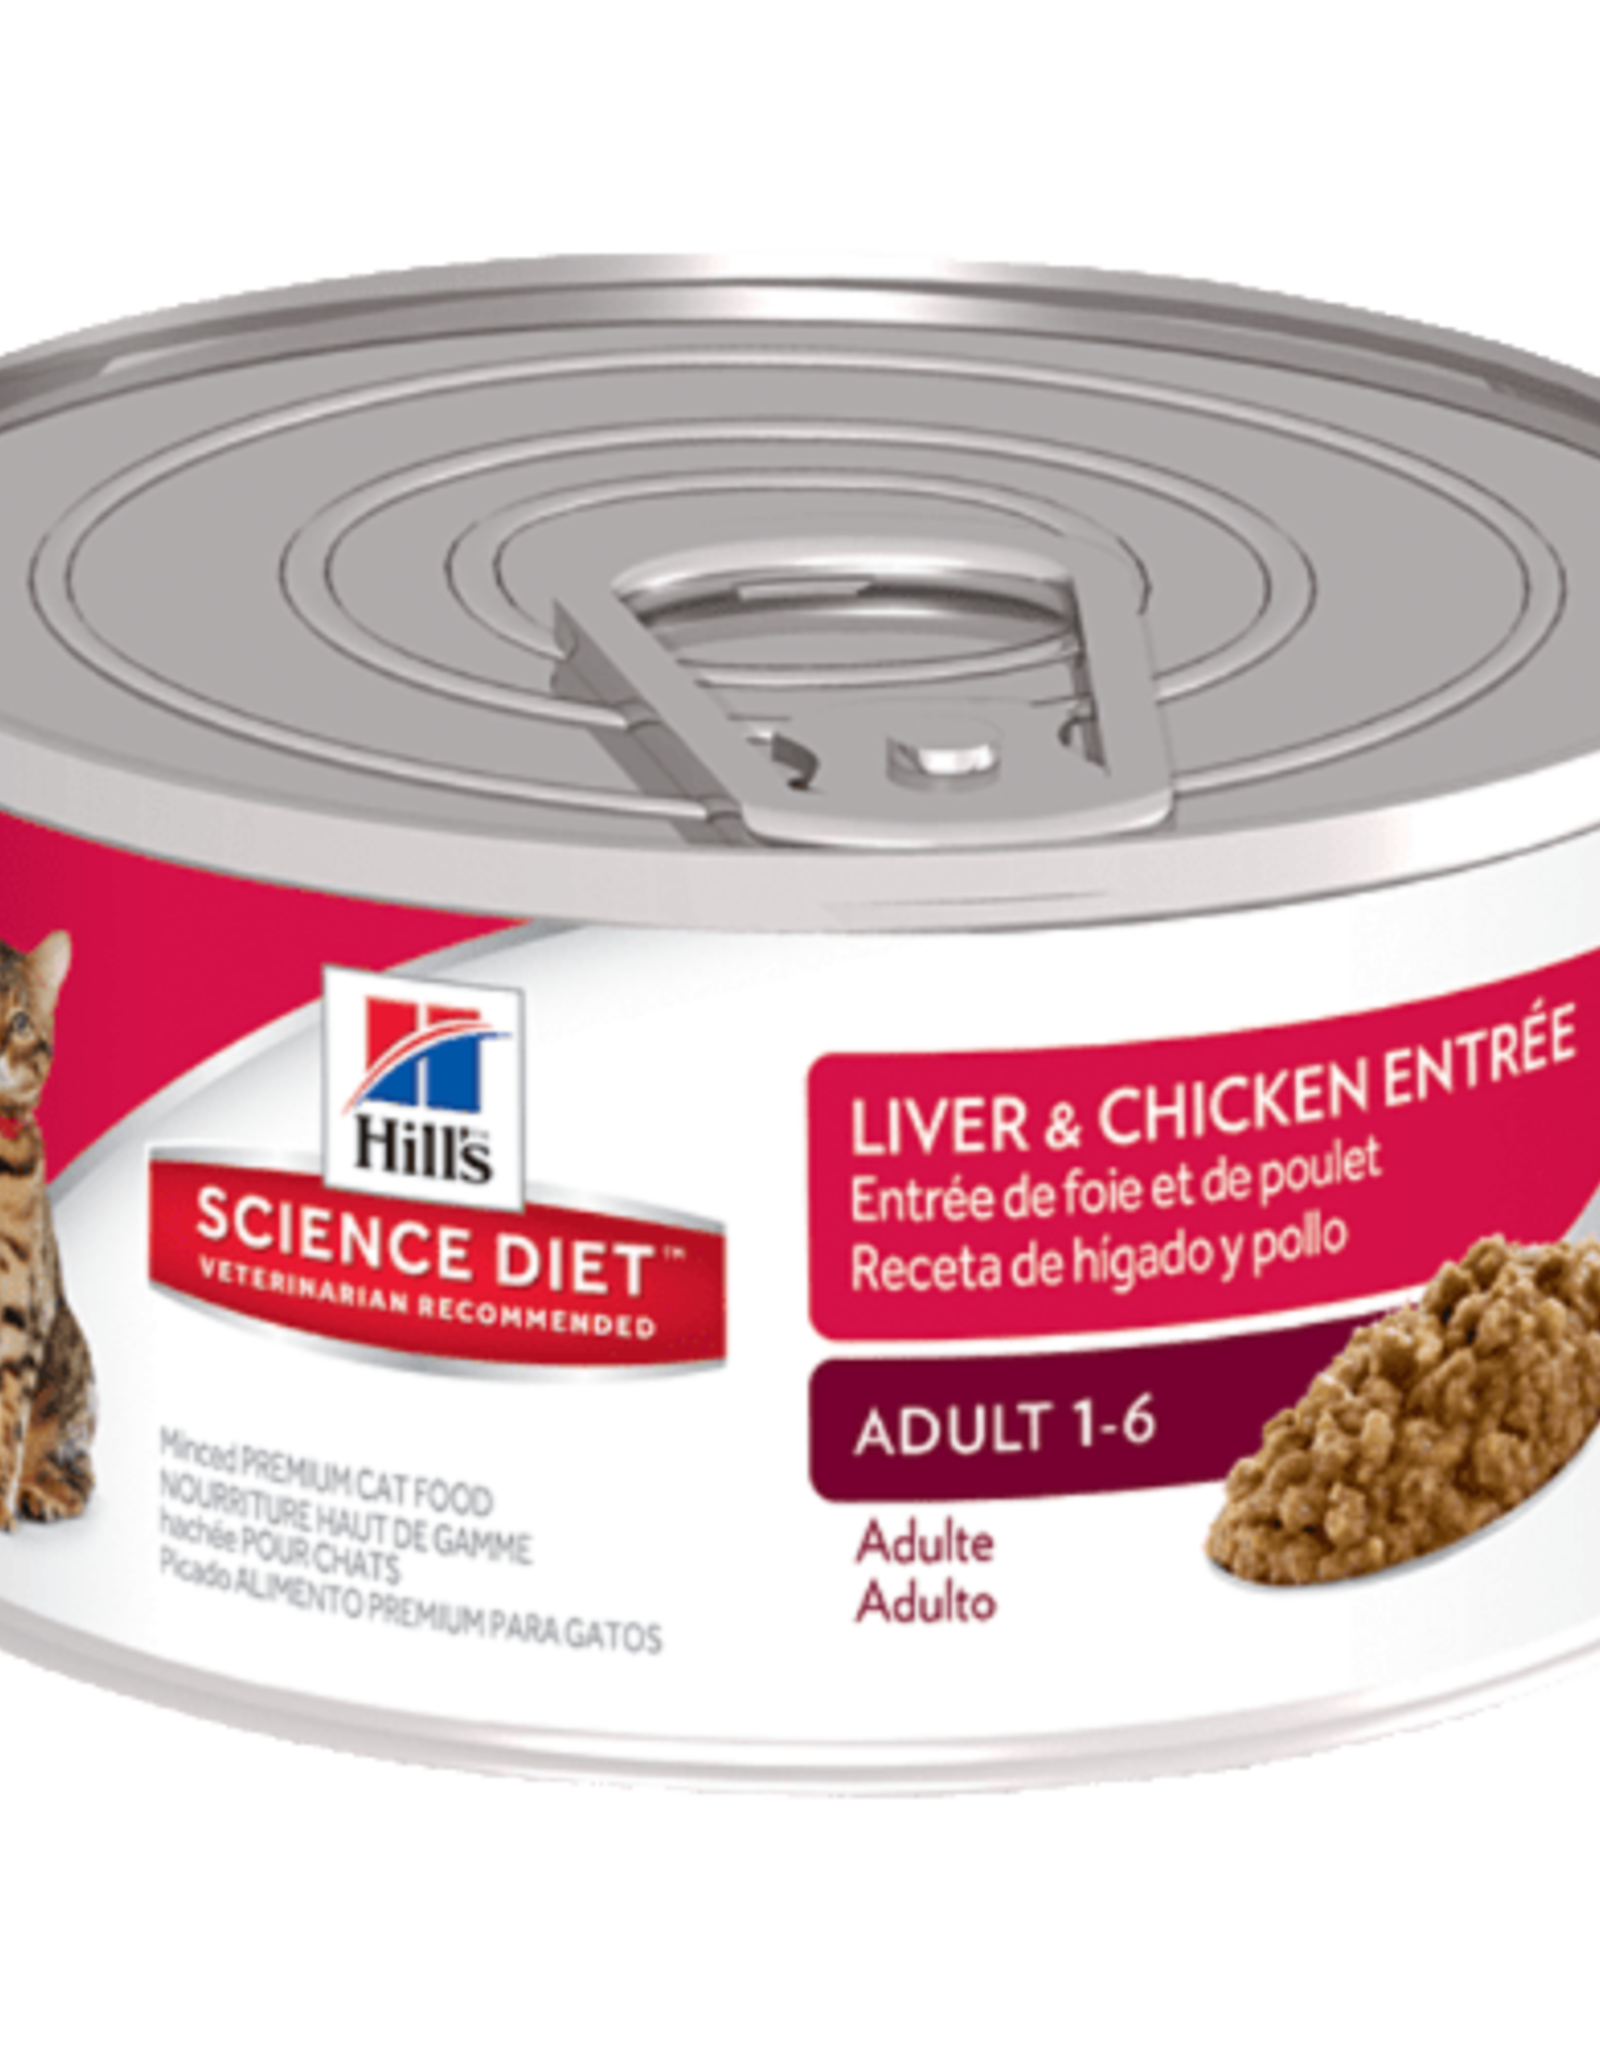 SCIENCE DIET HILL'S SCIENCE DIET FELINE CAN ADULT LIVER & CHICKEN 5.5OZ CASE OF 24